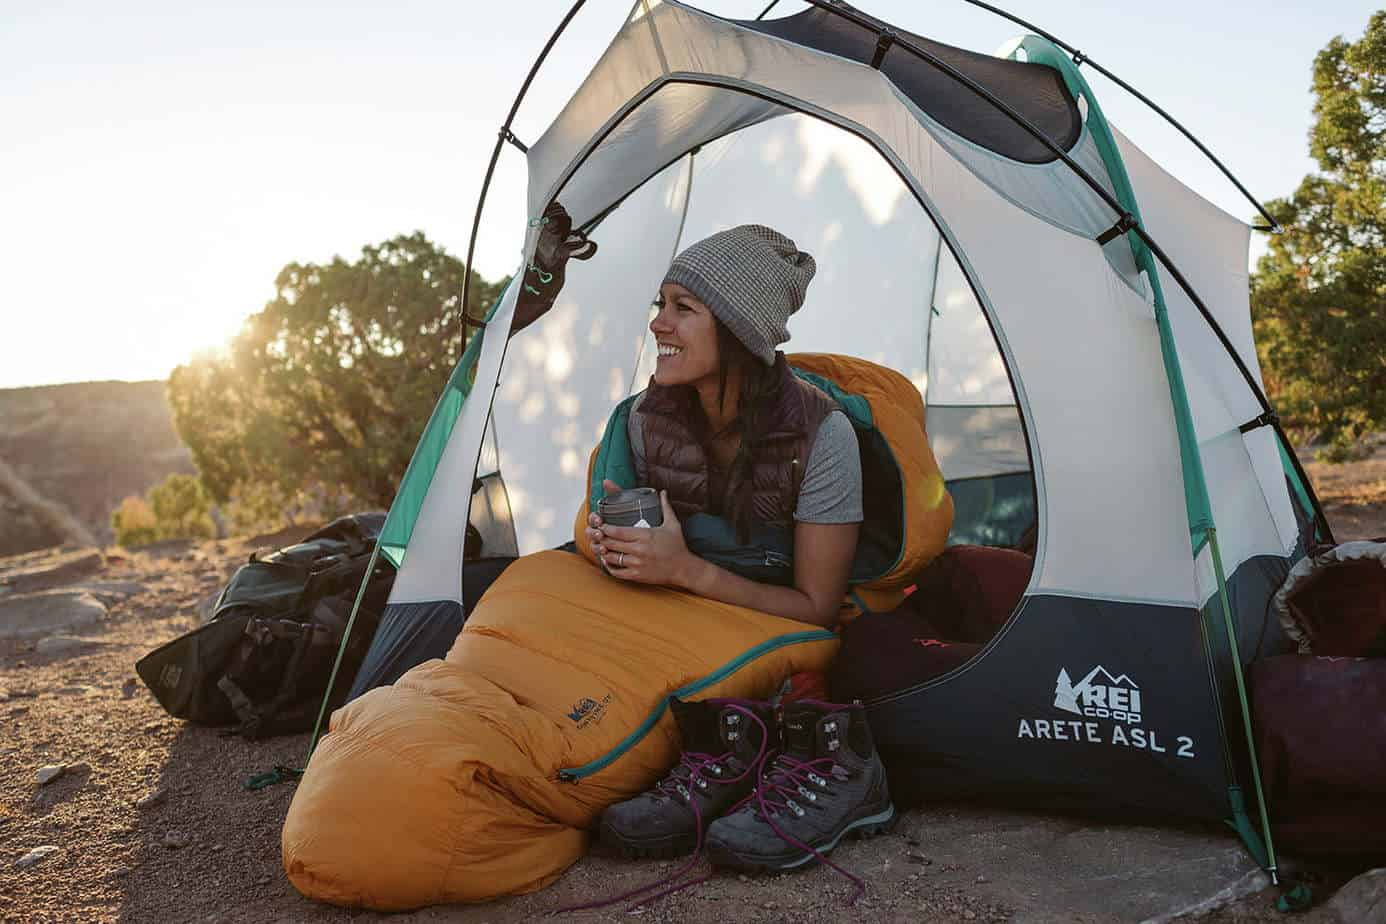 Fitness should be an adventure - Gear up for hiking at REI!